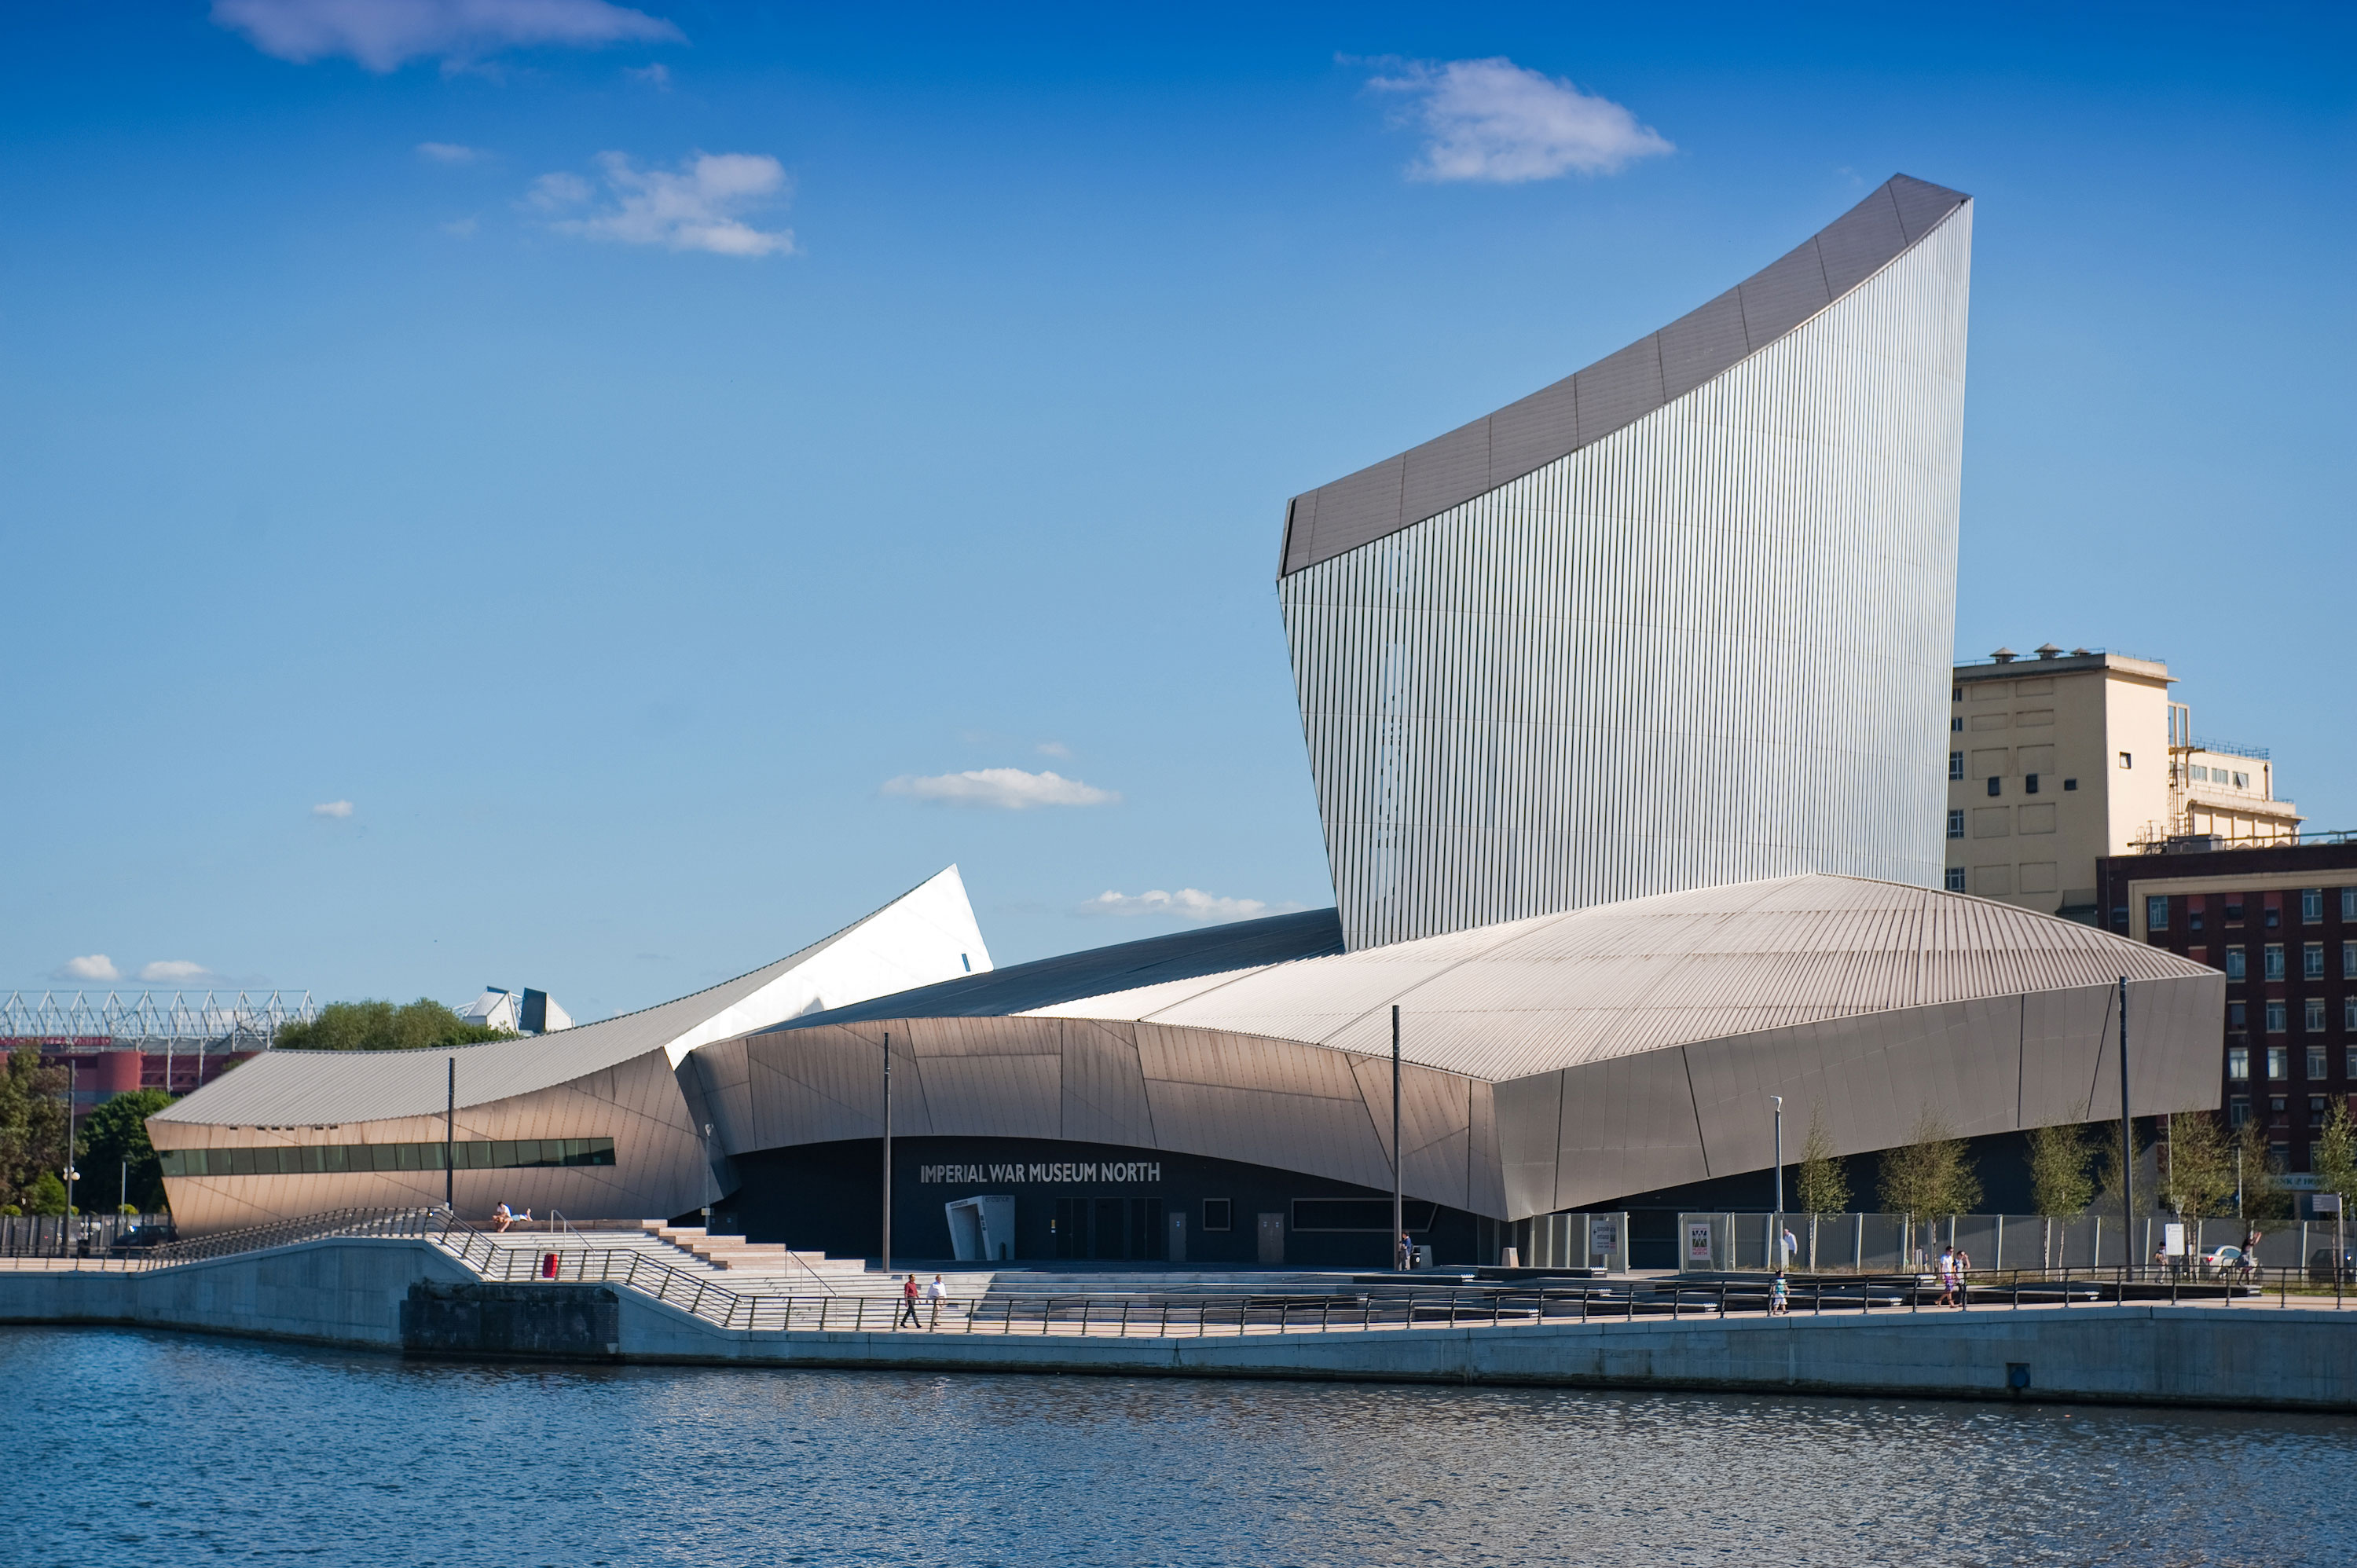 Imperial War Museum North exterior shot - host of story seekers